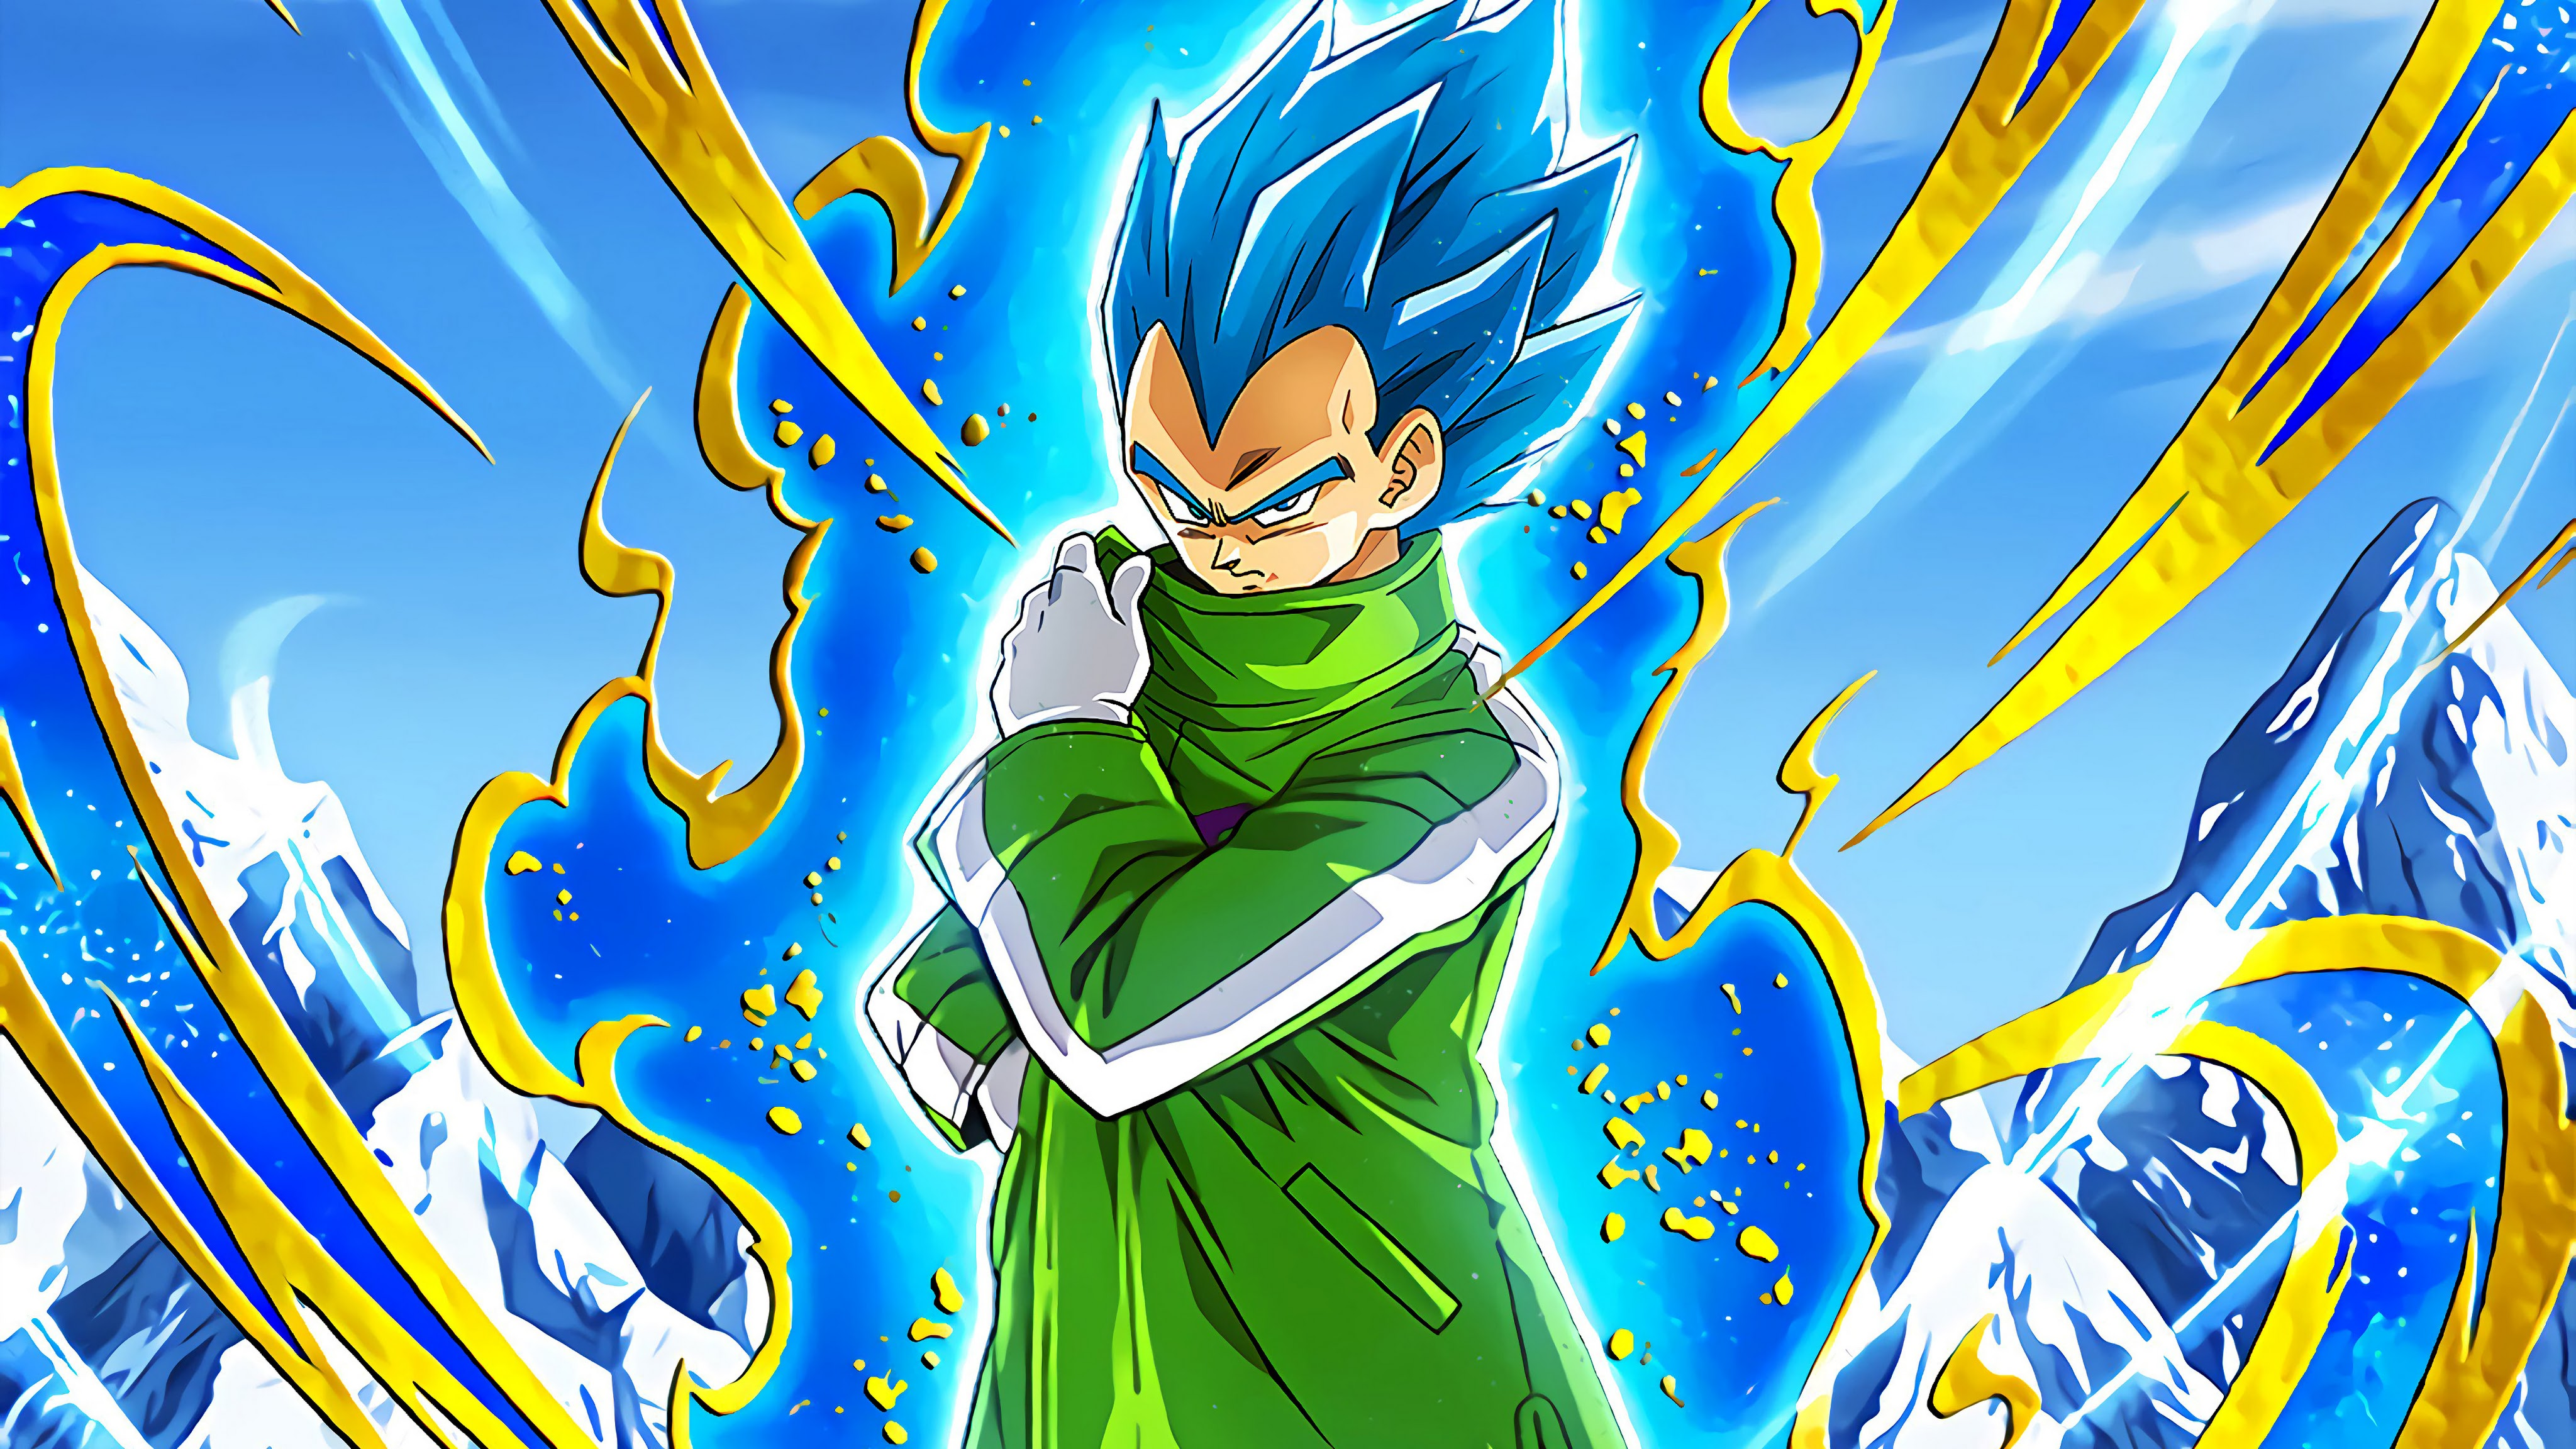 Vegeta Blue with Green Coat from DBS Broly Movie